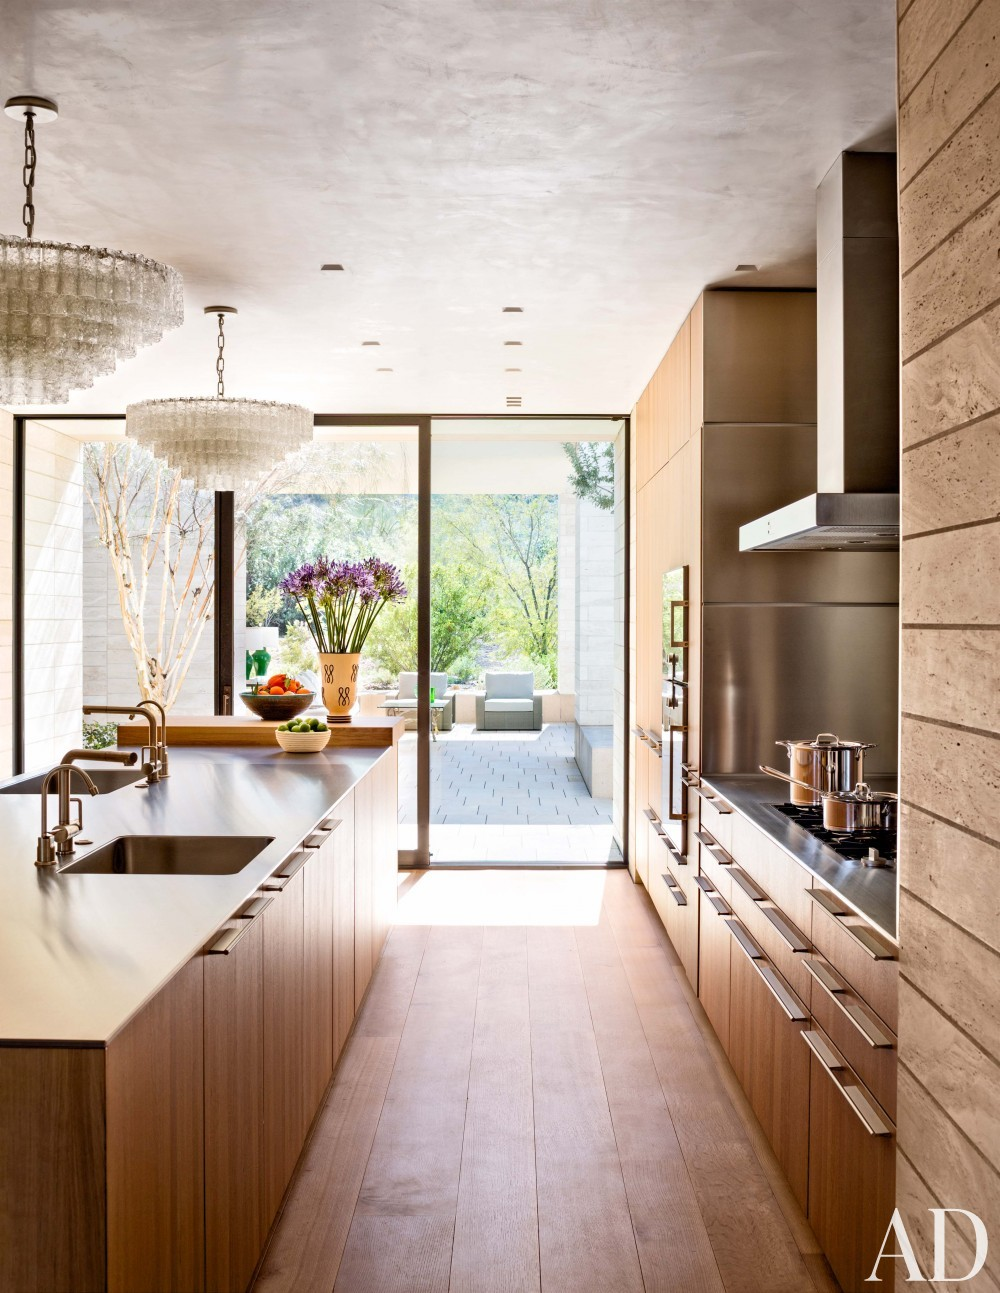 Contemporary Kitchen by Jan Showers and Marwan Al-Sayed in Arizona